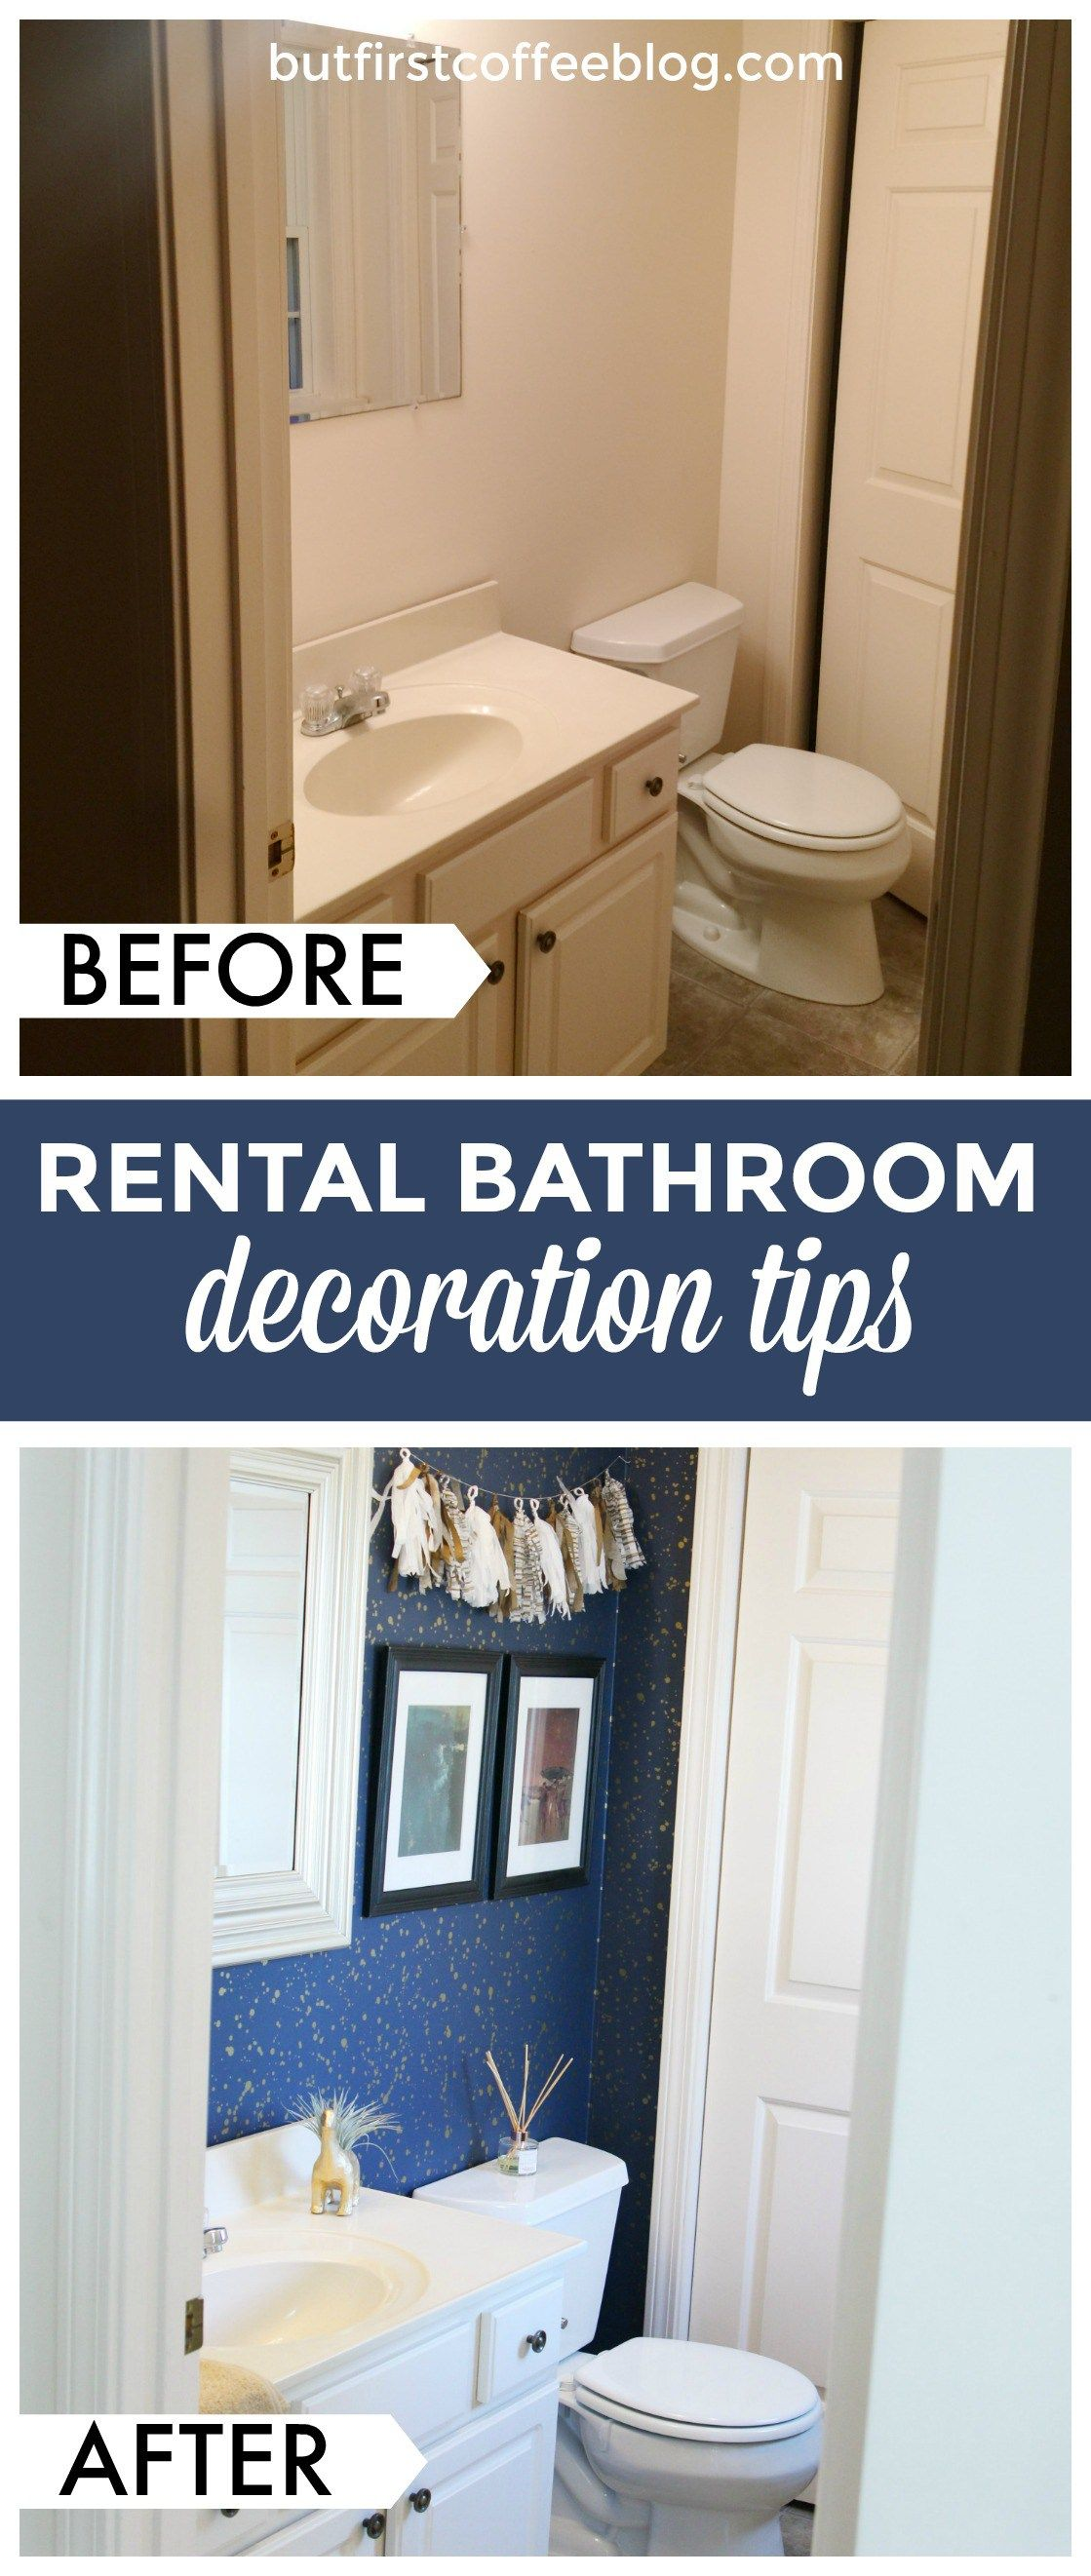 How to Decorate Your Rental Space? Bathroom Rental Decor